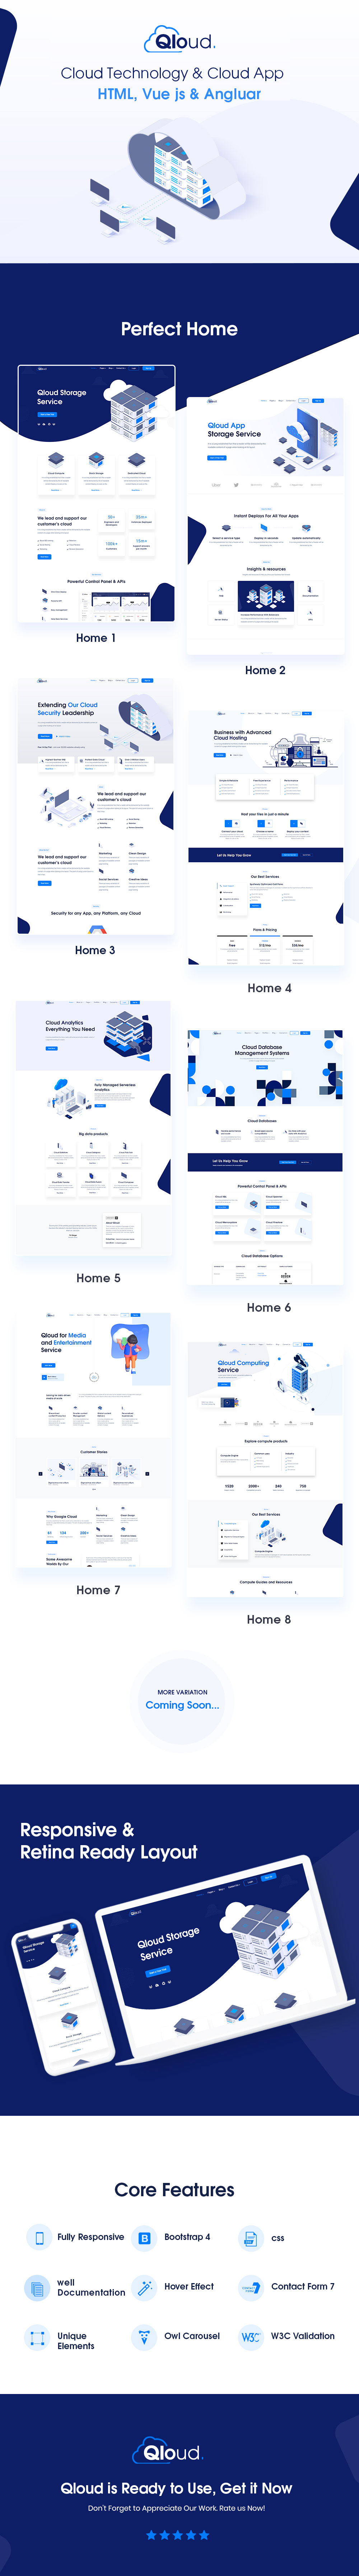 WordPress WHMCS Hosting Theme | Qloud | Iqonic Design cloud computing, apps and server html, whmcs, vue & angular template Qloud qloud html